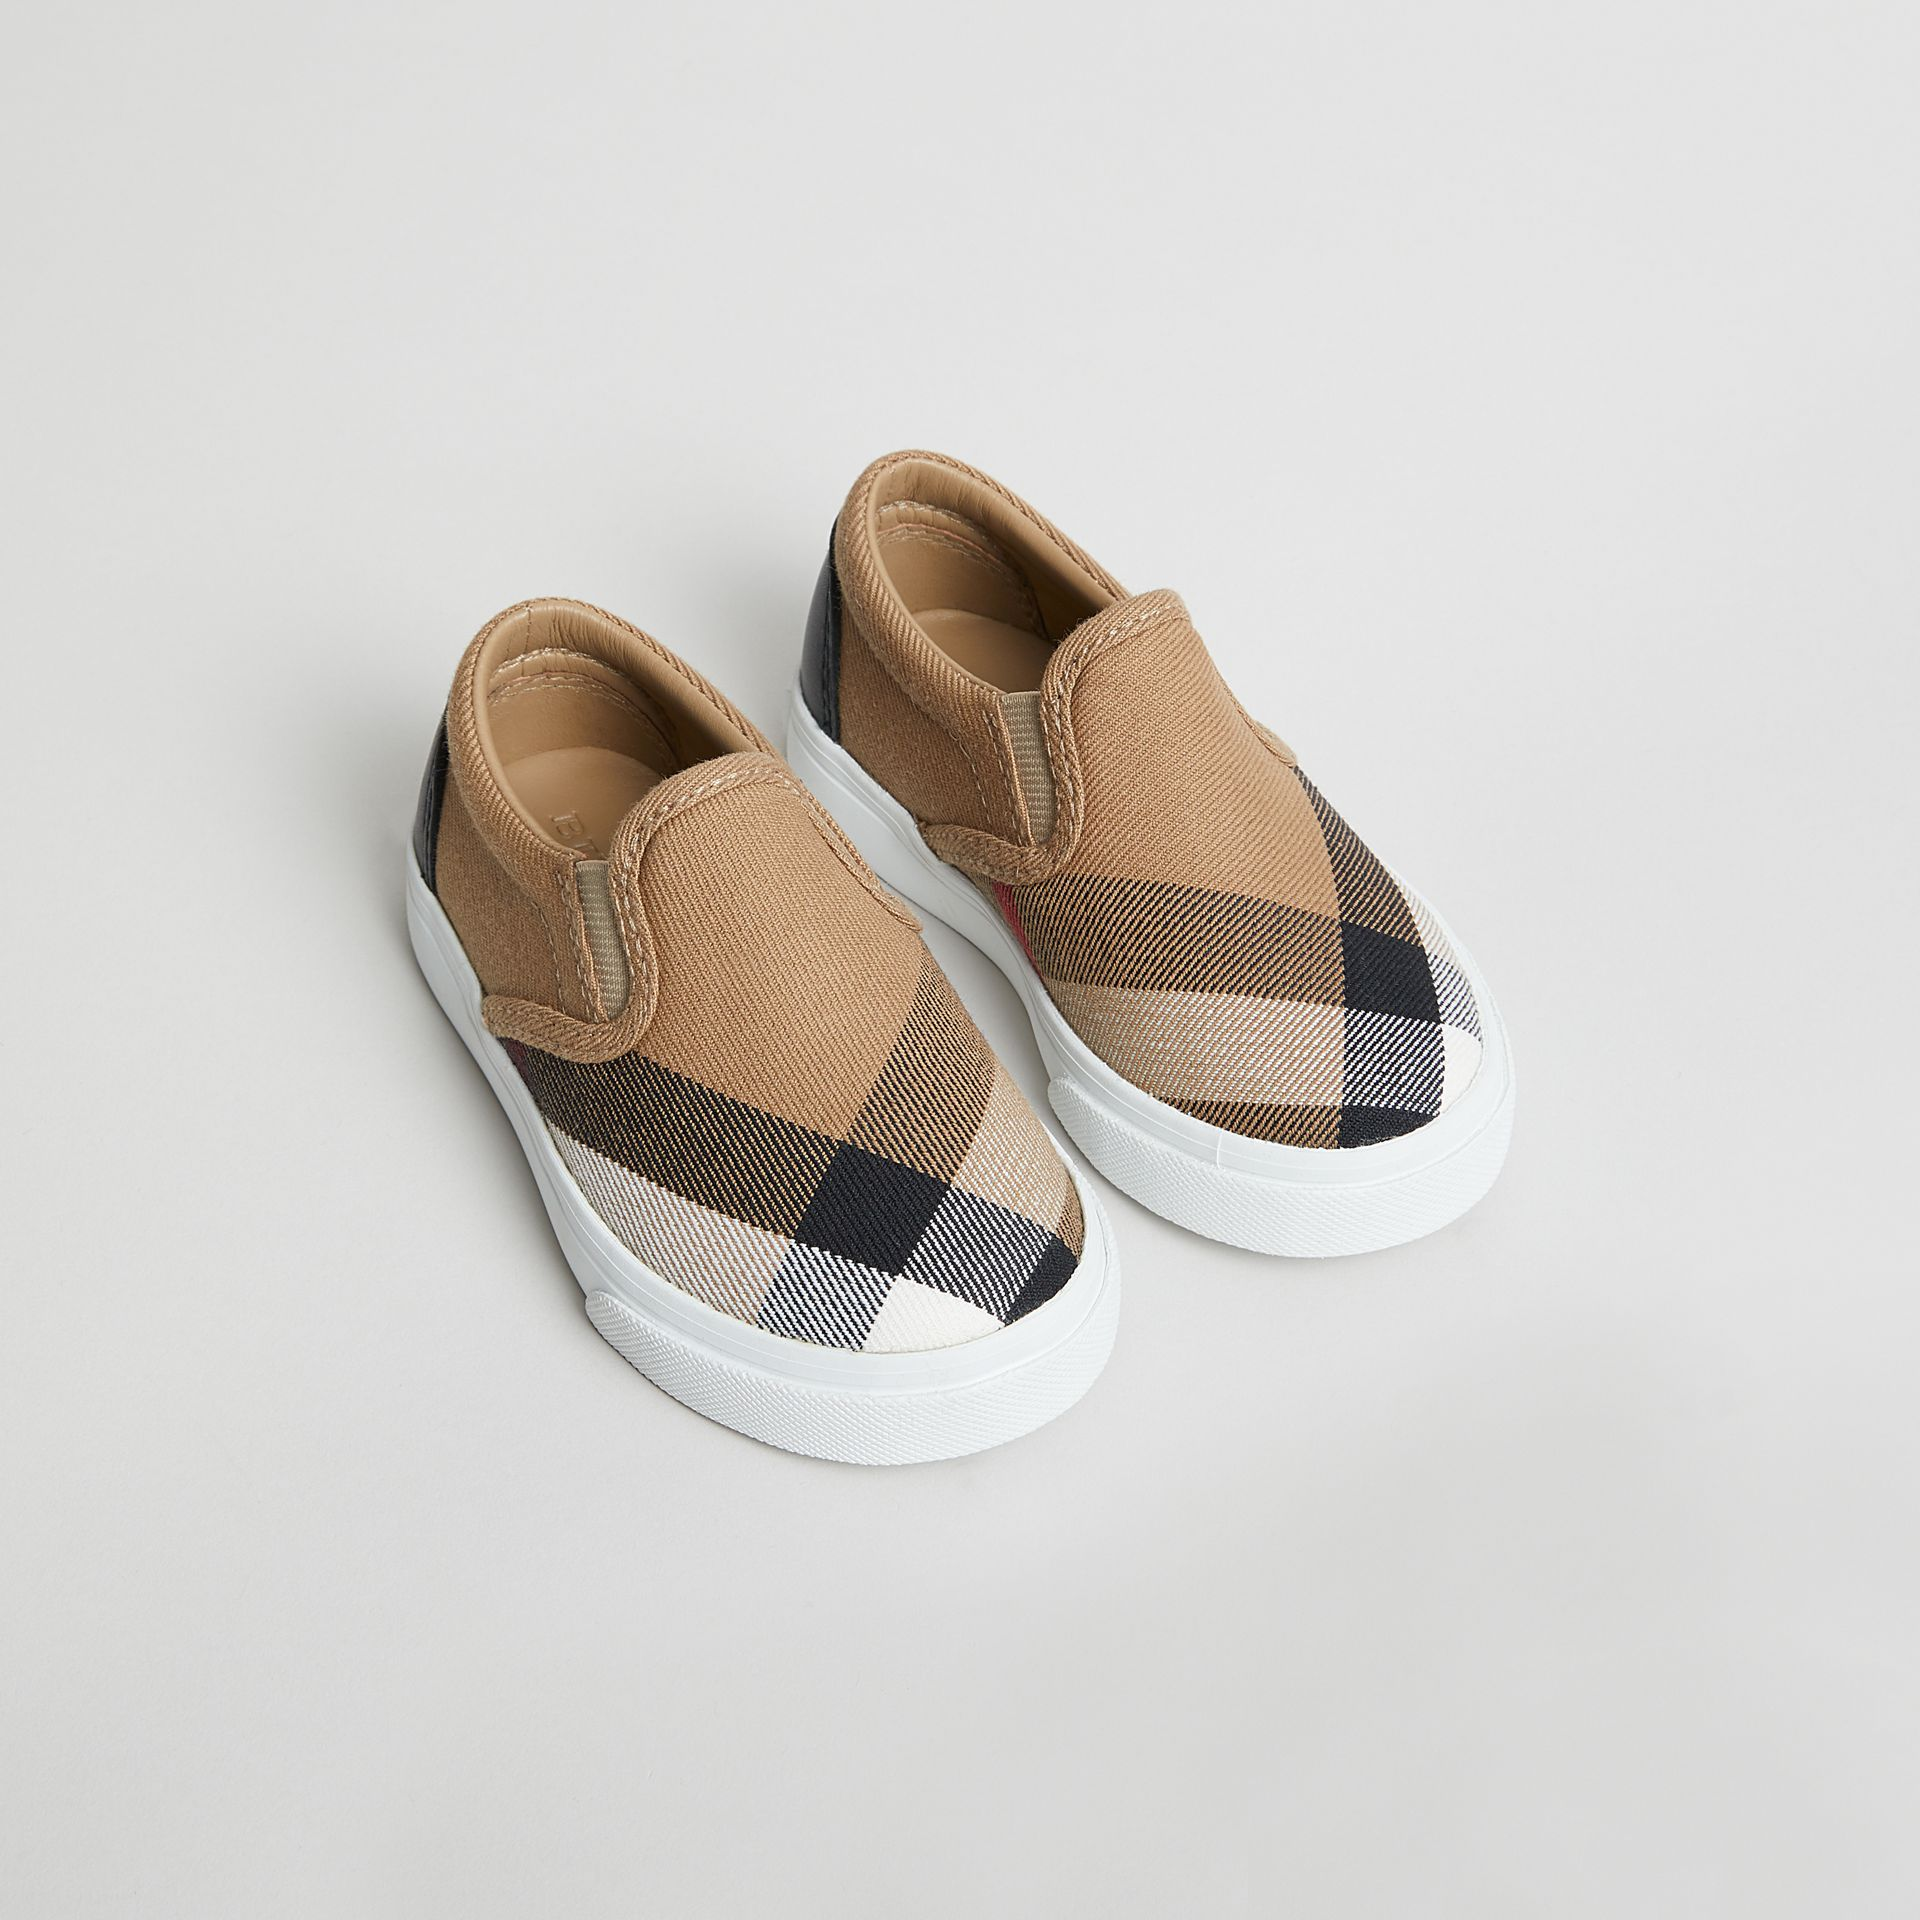 House Check and Leather Slip-on Sneakers in Classic/optic White | Burberry United States - gallery image 0